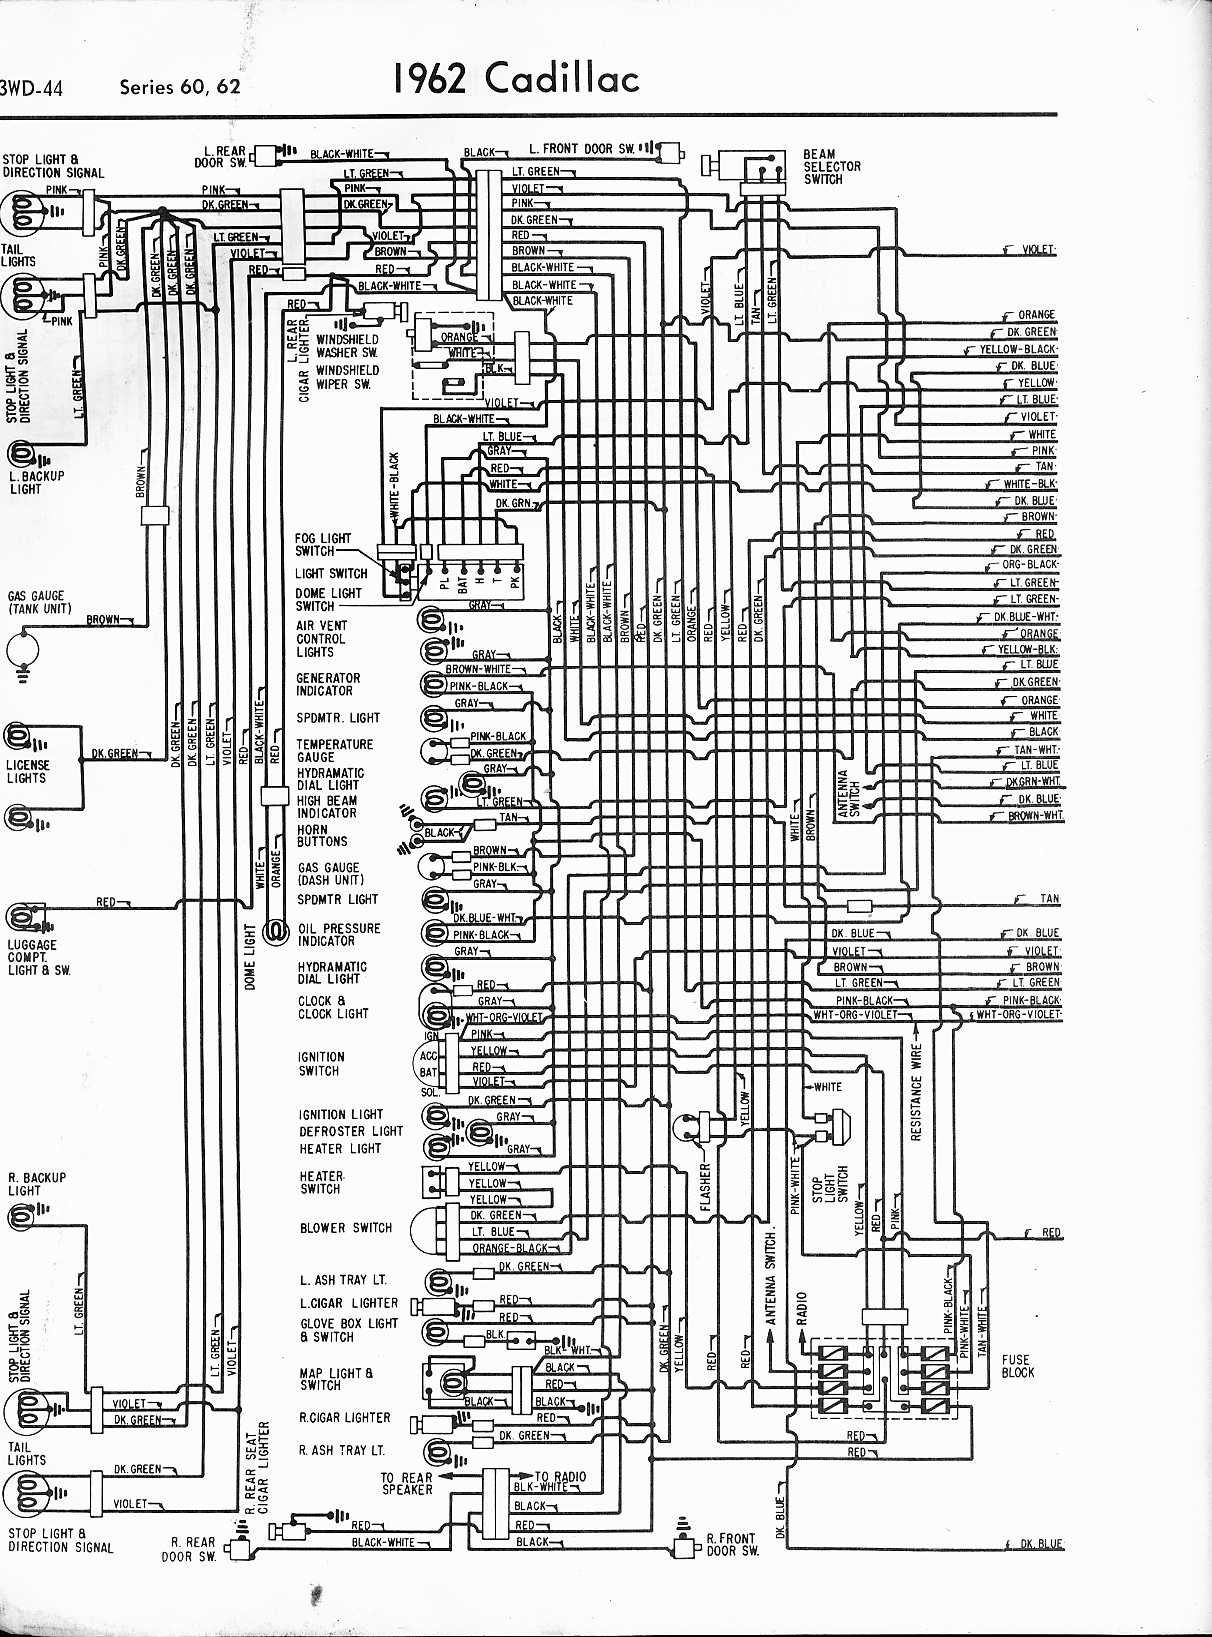 Cadillac Wiring Diagrams : Cadillac distributor diagram free engine image